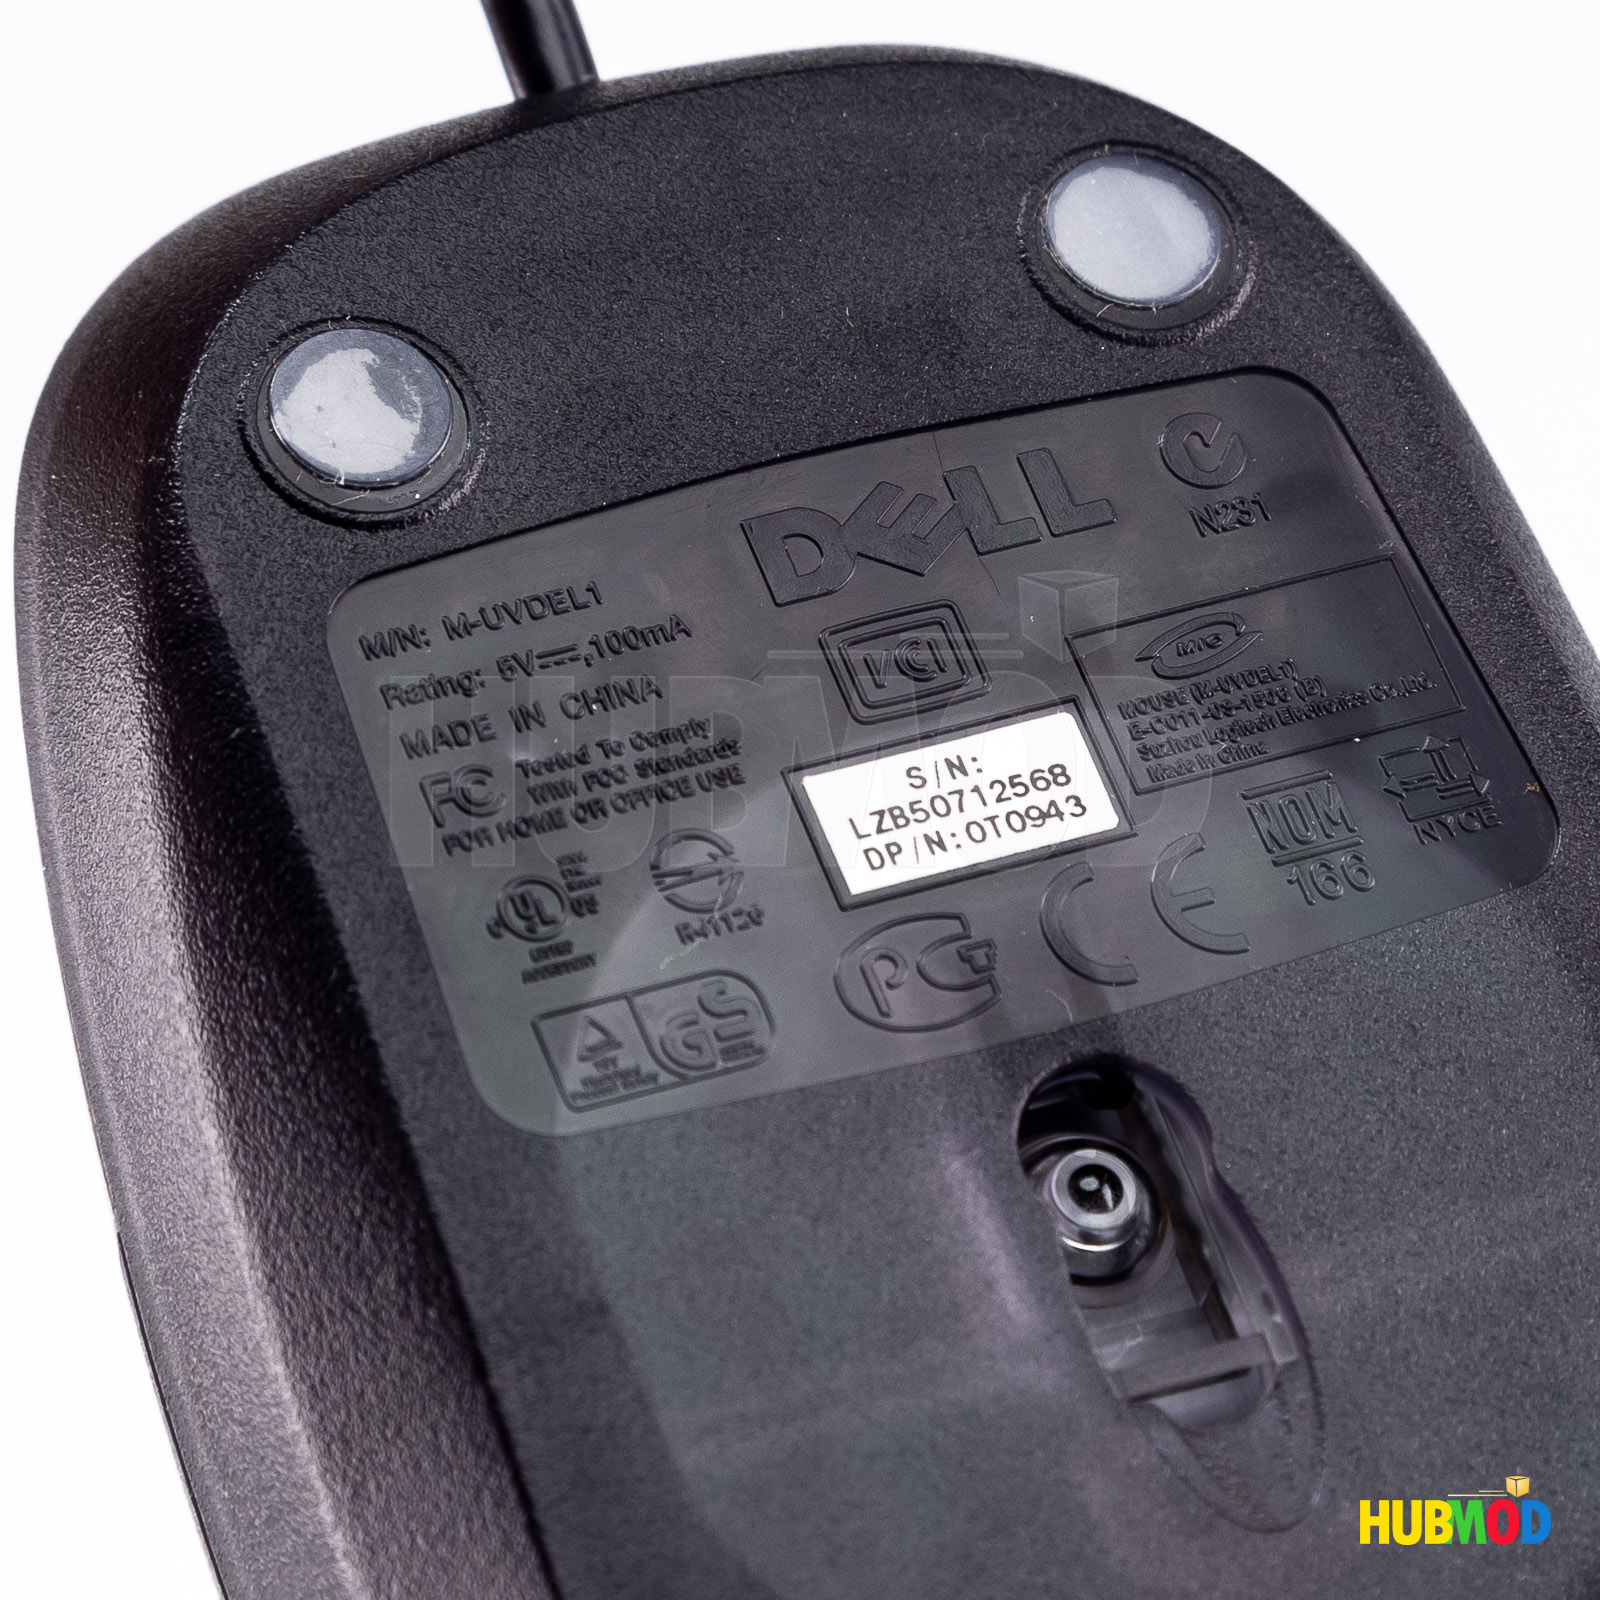 LOT of 2 Pack DELL 3 Button Optical USB Wired Mouse with Scroll Wheel M-UVDEL1